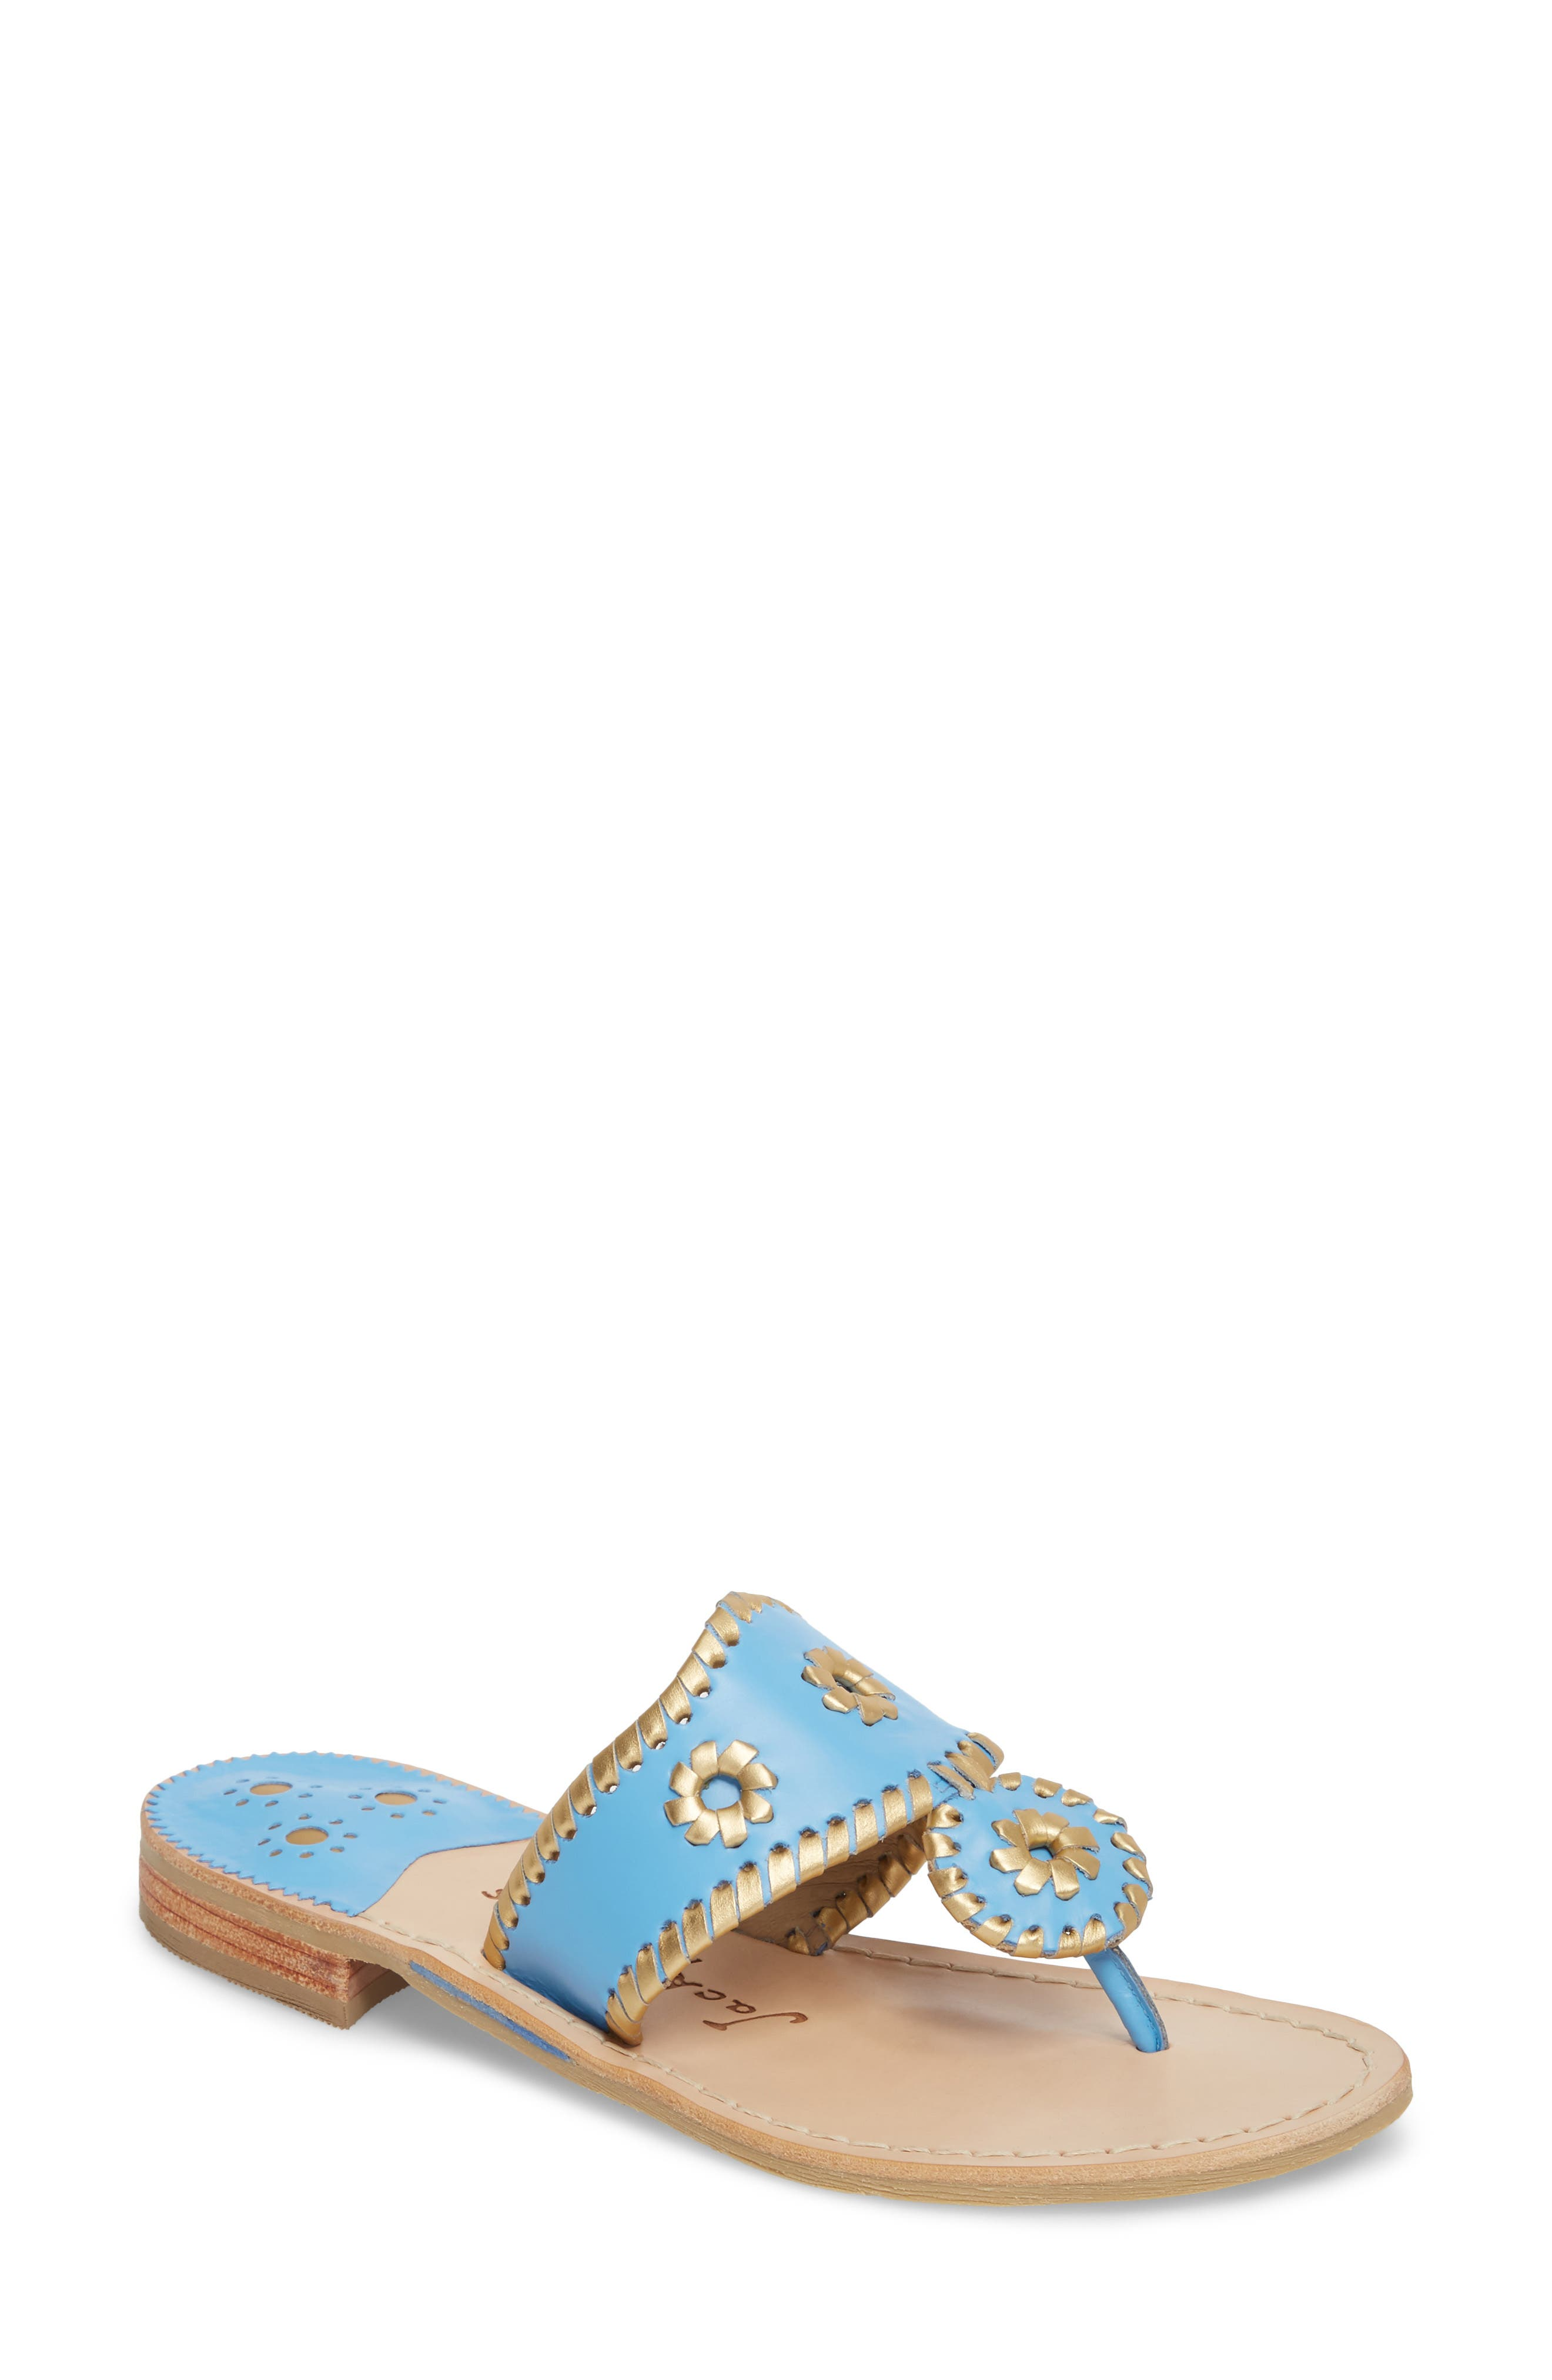 Hollis Flat Sandal,                             Main thumbnail 1, color,                             406